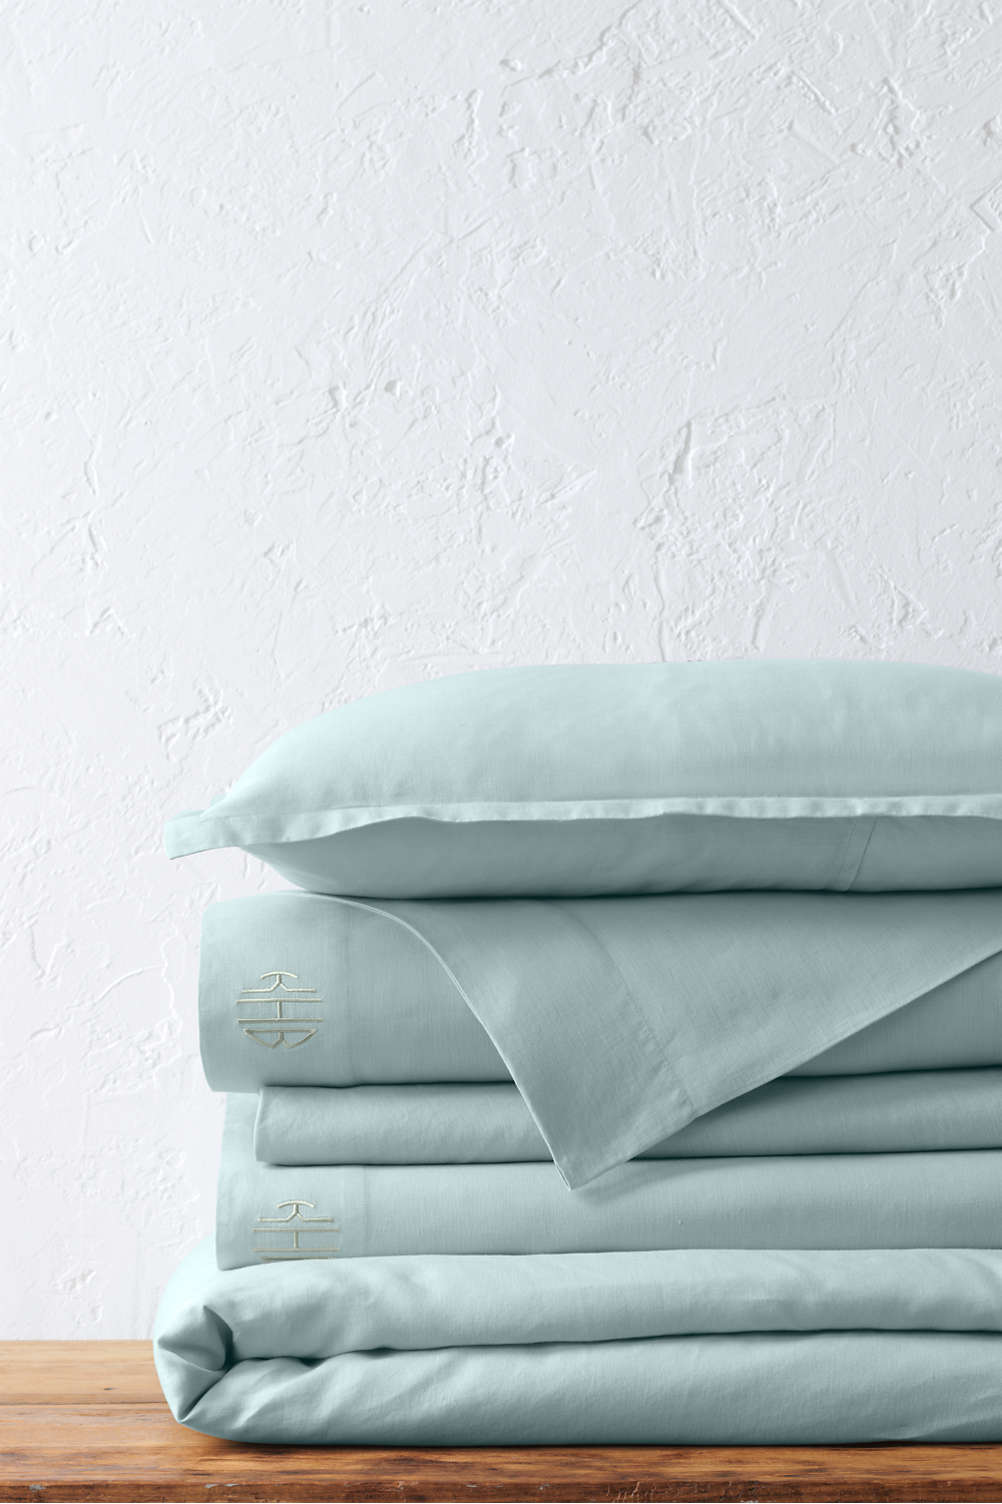 Garment washed linen duvet cover and sham from lands end